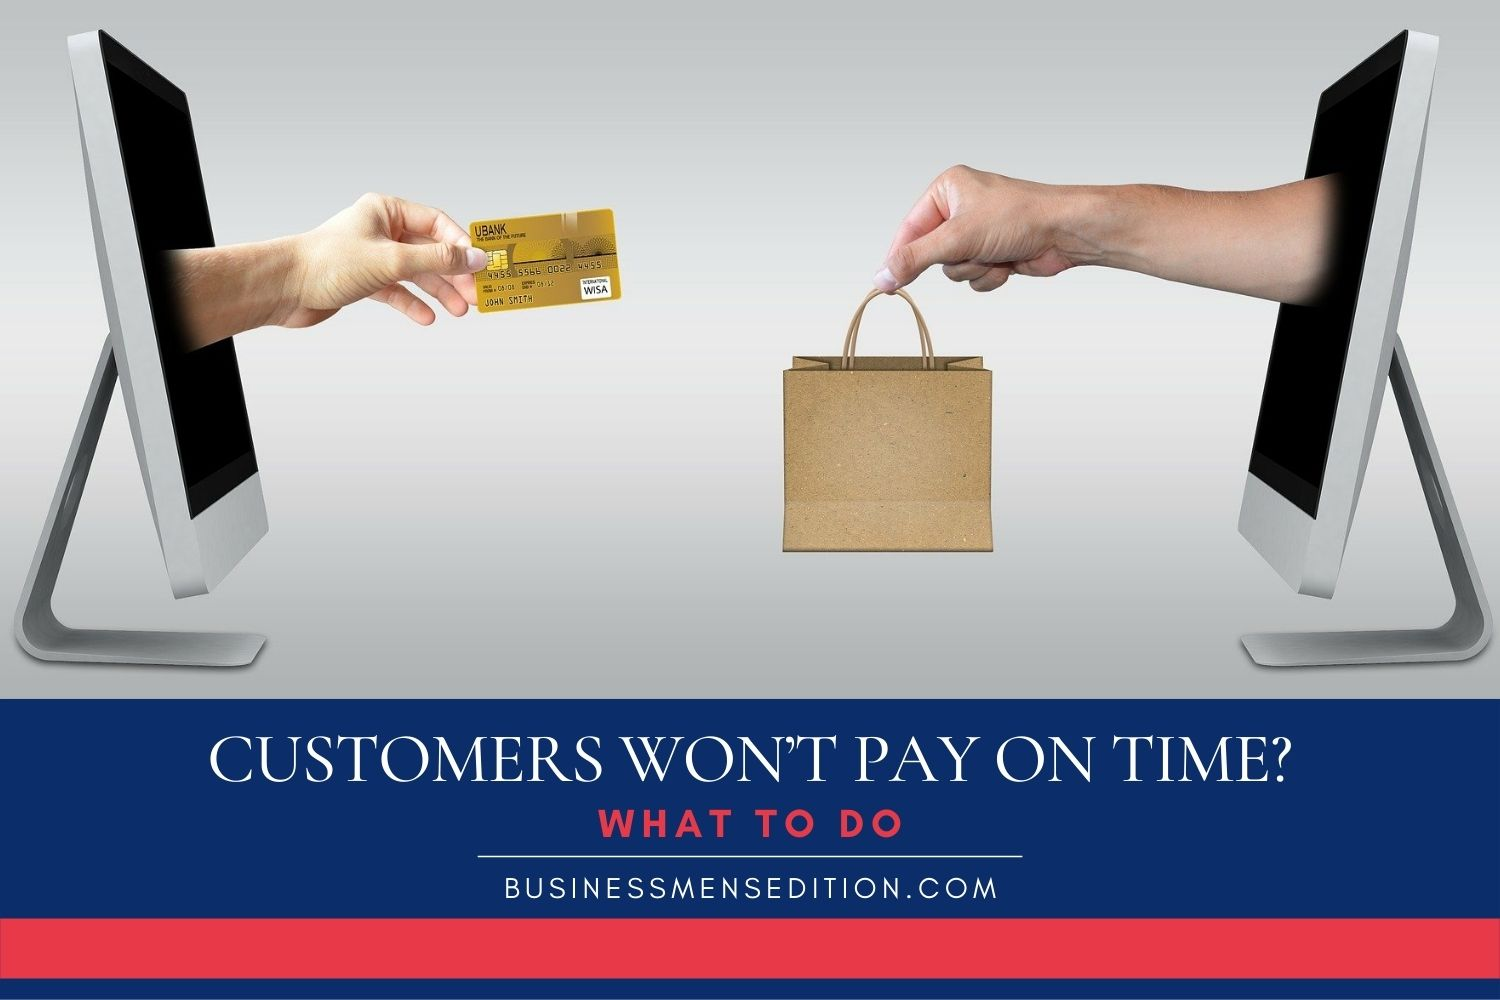 5 Tips on What to Do when Customers Won't Pay on Time